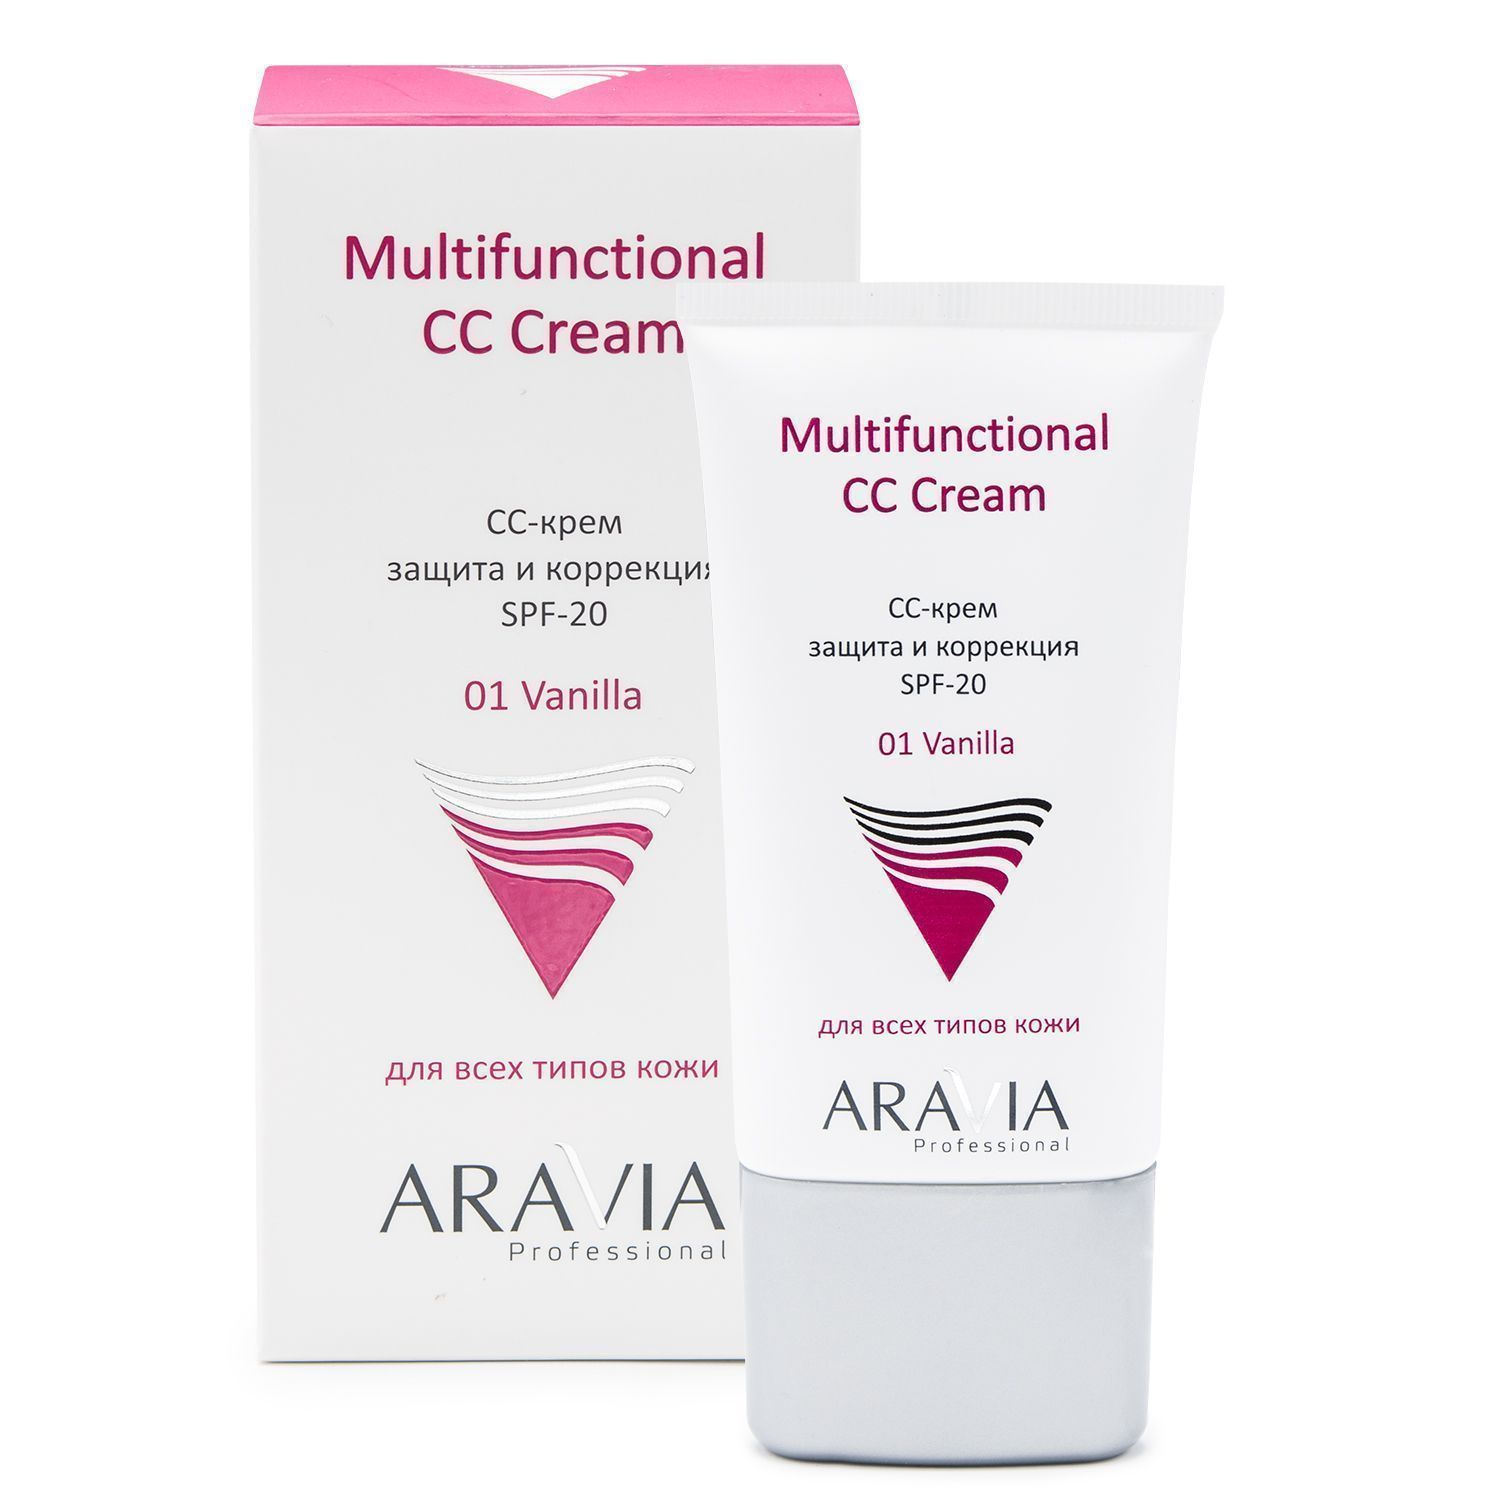 ARAVIA ProfessionalСС-крем защитный SPF-20 Multifunctional CC Cream, Vanilla 01, 50 мл